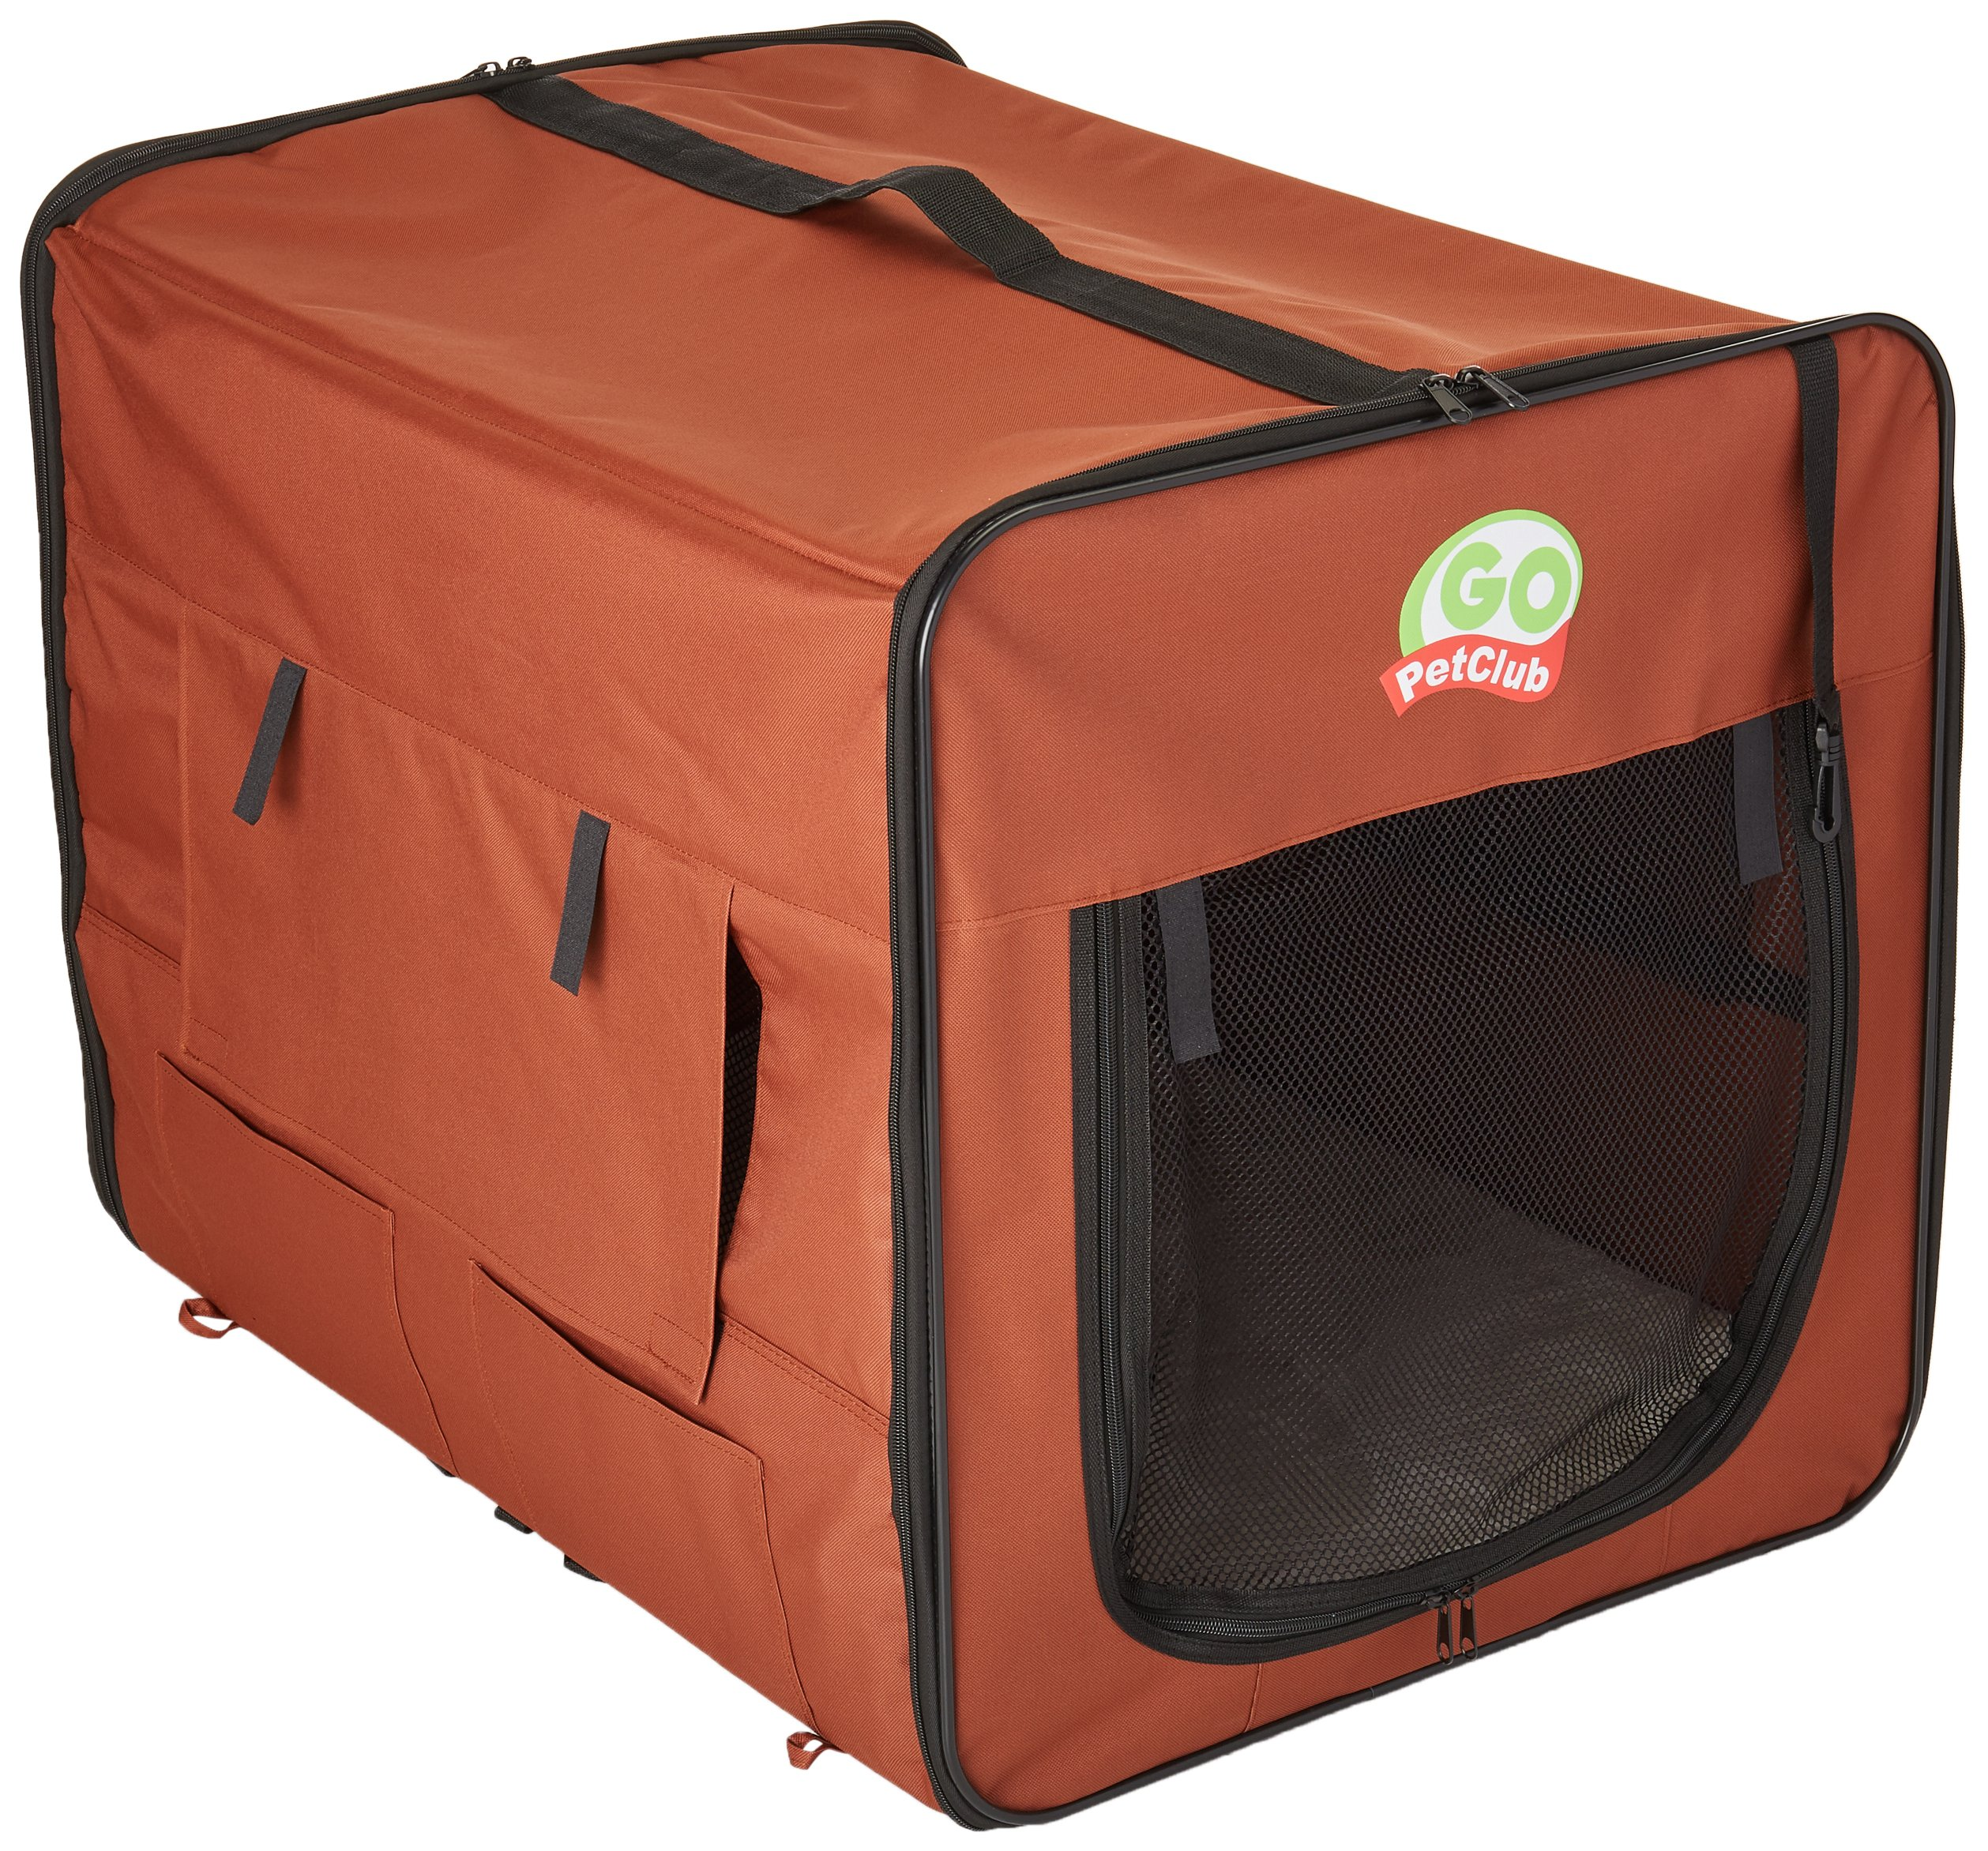 Go Pet Club AB32 Soft Dog Crate, Brown – 32 inches L x 22.2 inches W x 23.5 inches H